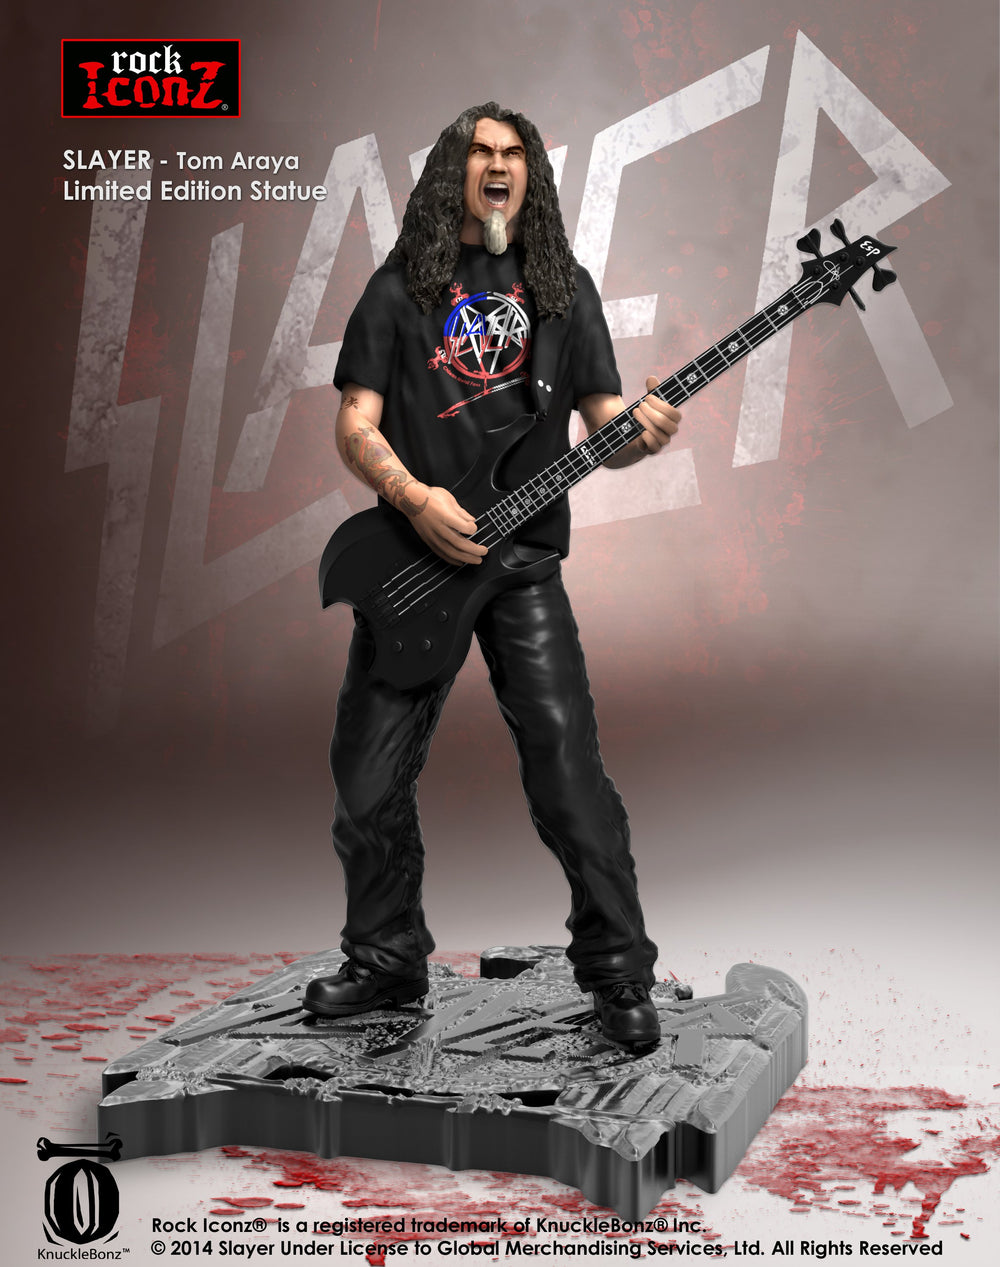 Slayer Collectible 2014 Knucklebonz Rock Iconz Limited Edition Tom Araya Statue #178/3000